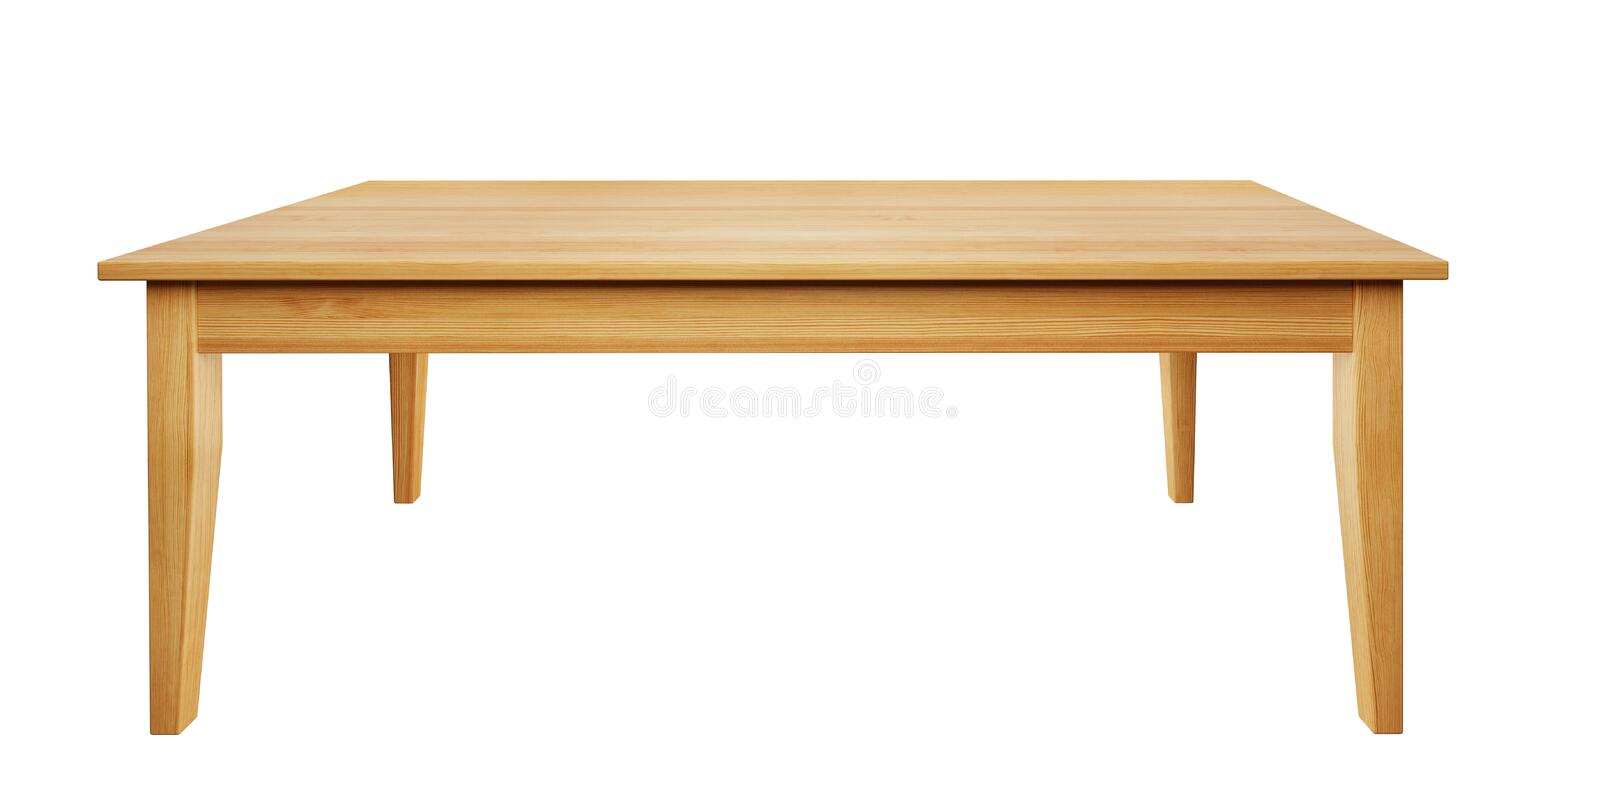 Wooden table isolated on white background with clipping path included, 3D render. Front view of wooden table isolated on white background with clipping path royalty free illustration